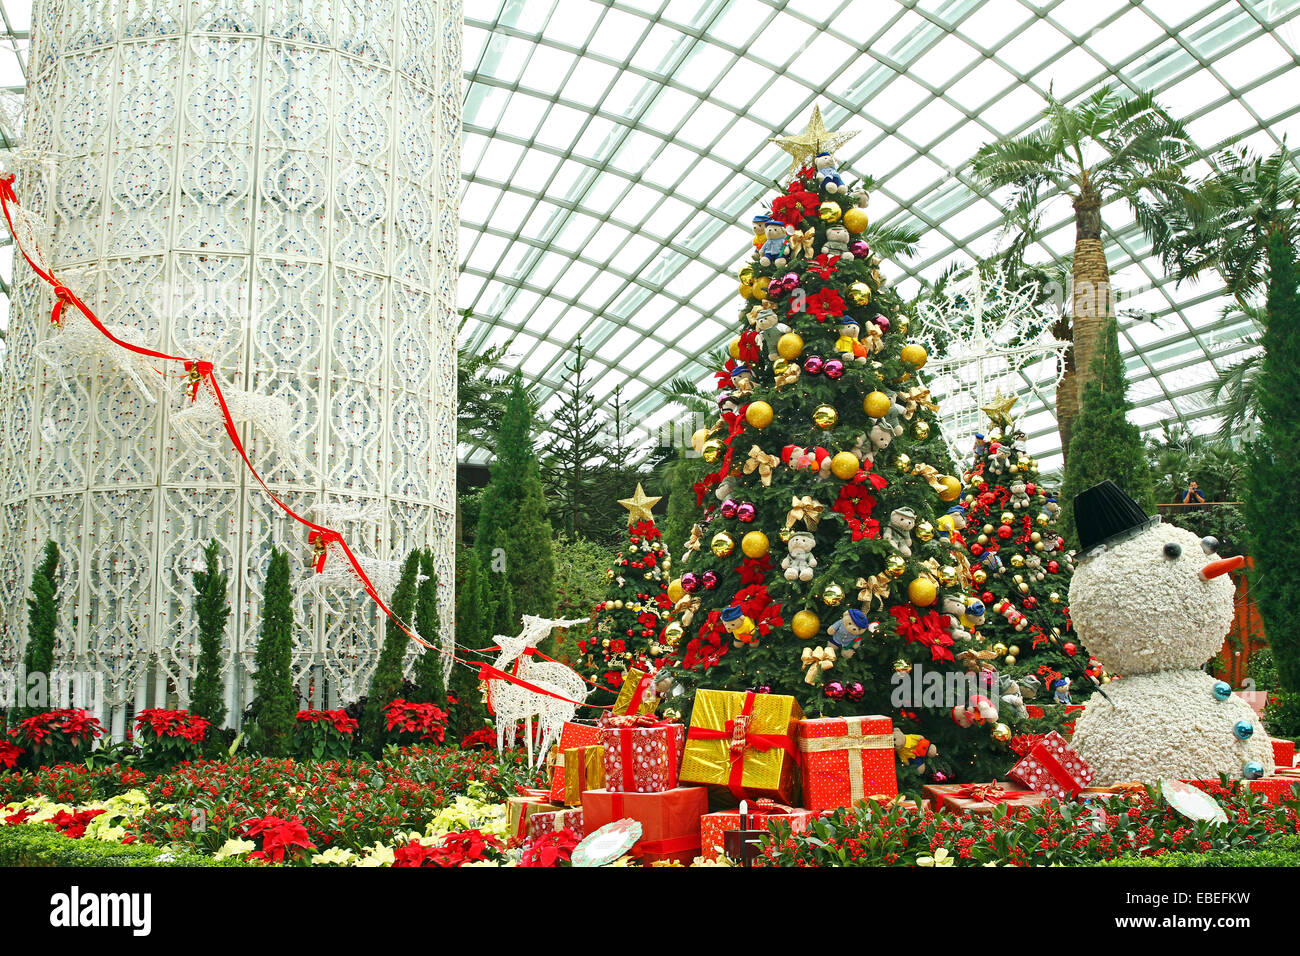 Singapore. 29th November, 2014. The Flower Dome becomes a winter wonderland at Gardens by the Bay, Singapore Credit: Stock Photo